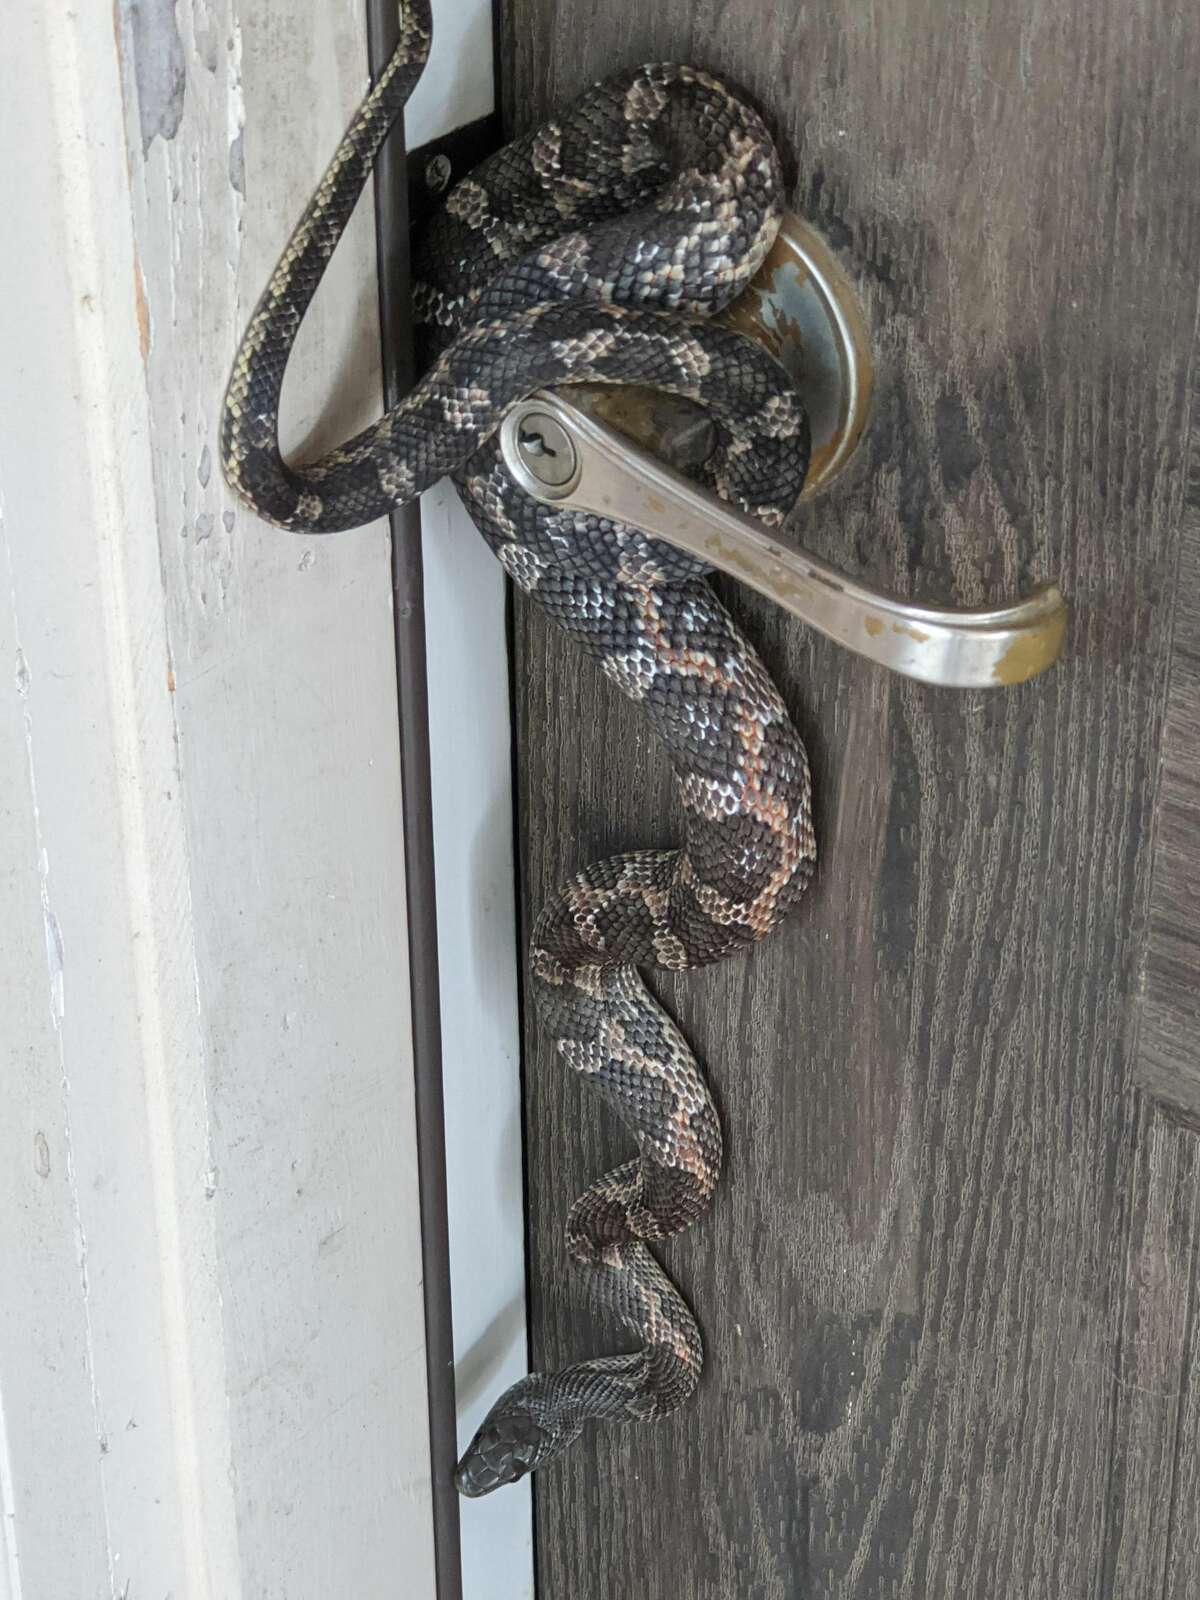 """When Jose Perez opened his front door on Sunday, he encountered an unexpected guest hanging on the door knob of his South Side home. The visitor was a """"huge'"""" rat snake, Perez said."""